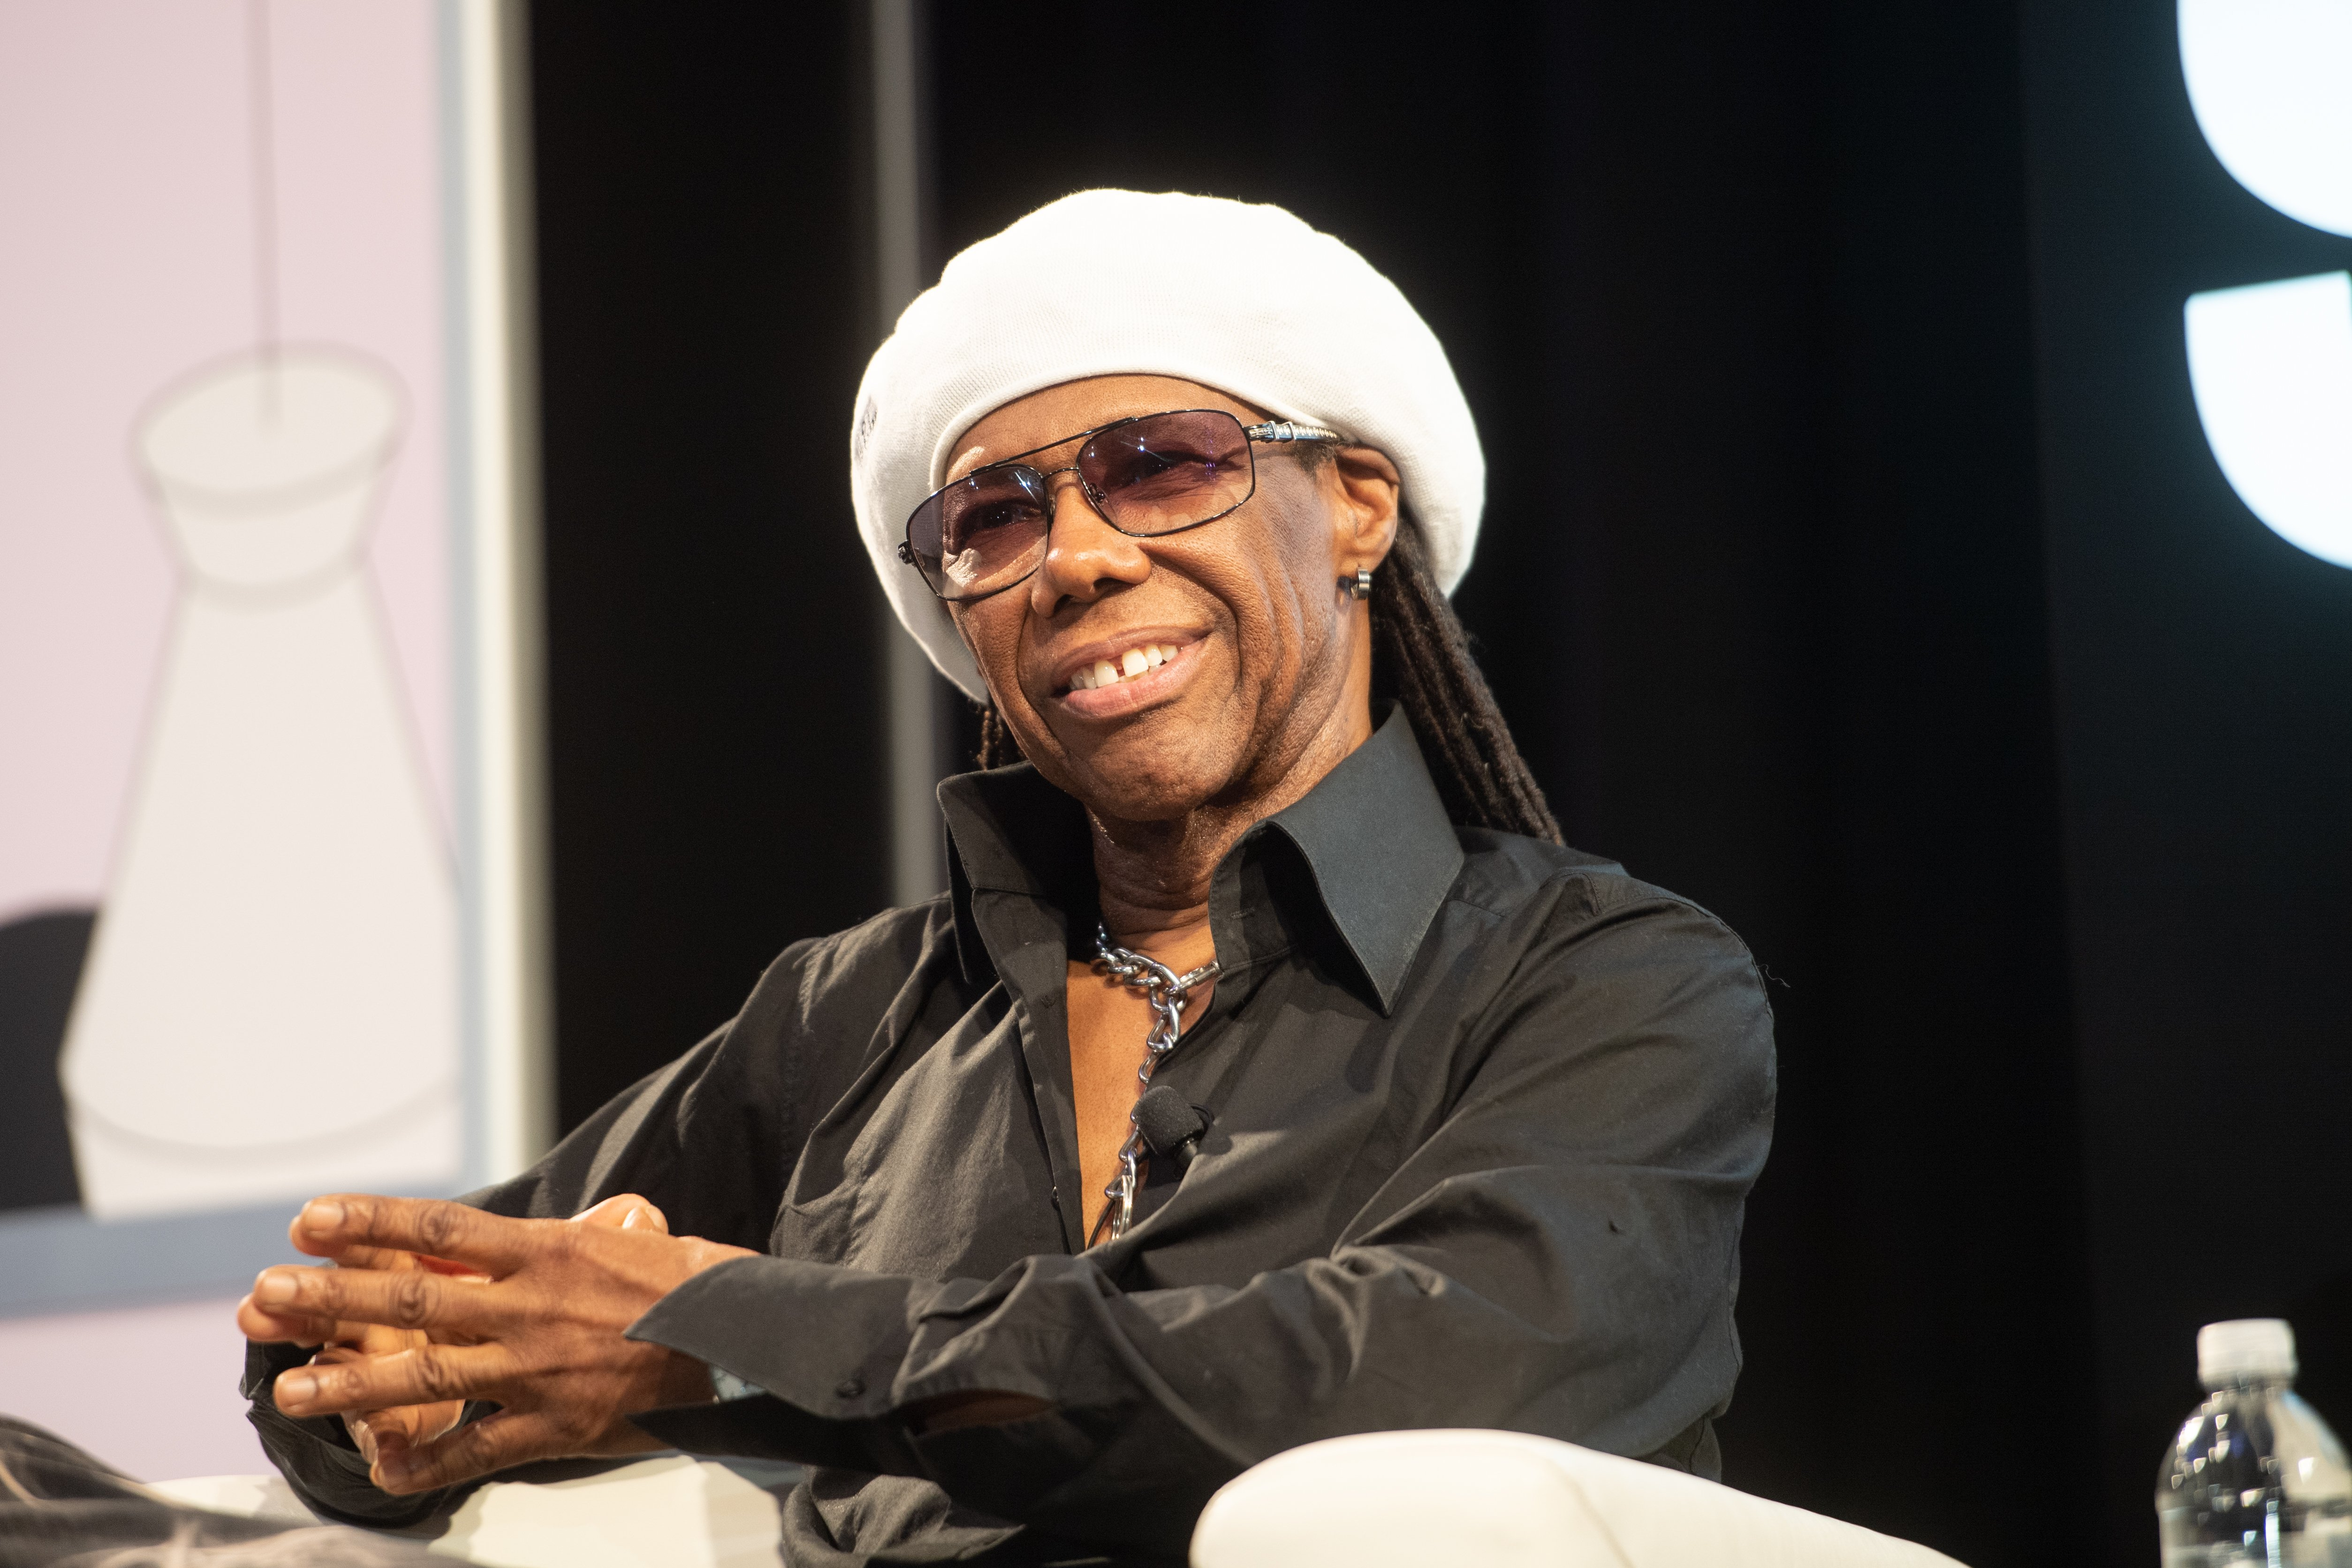 Nile Rodgers speaks onstage during the Featured Session: Nile Rodgers & Merck Mercuriadis - 2019 SXSW Conference and Festivals at Austin Convention Center on March 14, 2019. | Photo: Getty Images